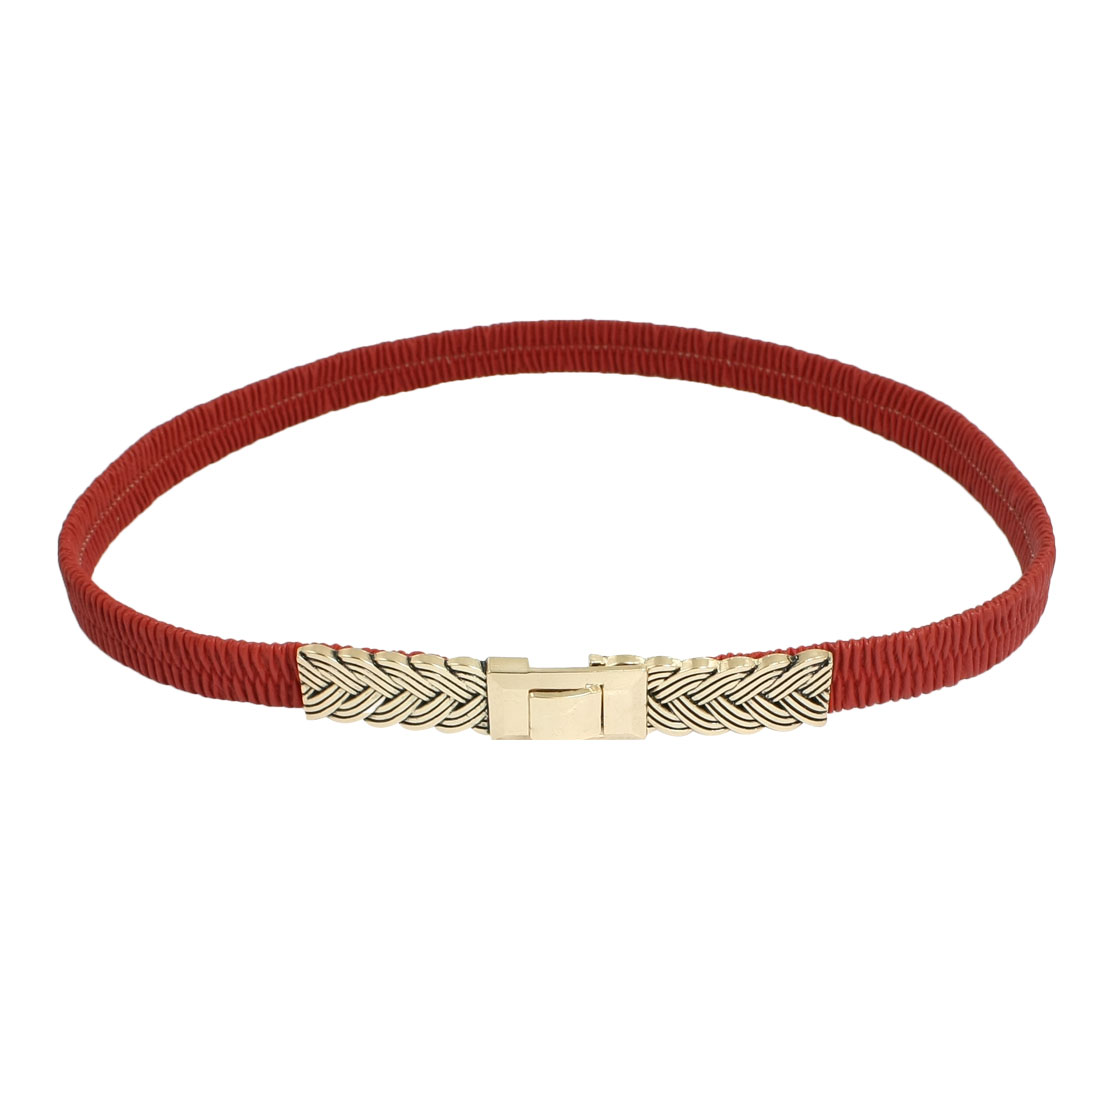 Lady Interlocking Buckle Faux Leather Elastic Dressing Cinch Belt Red